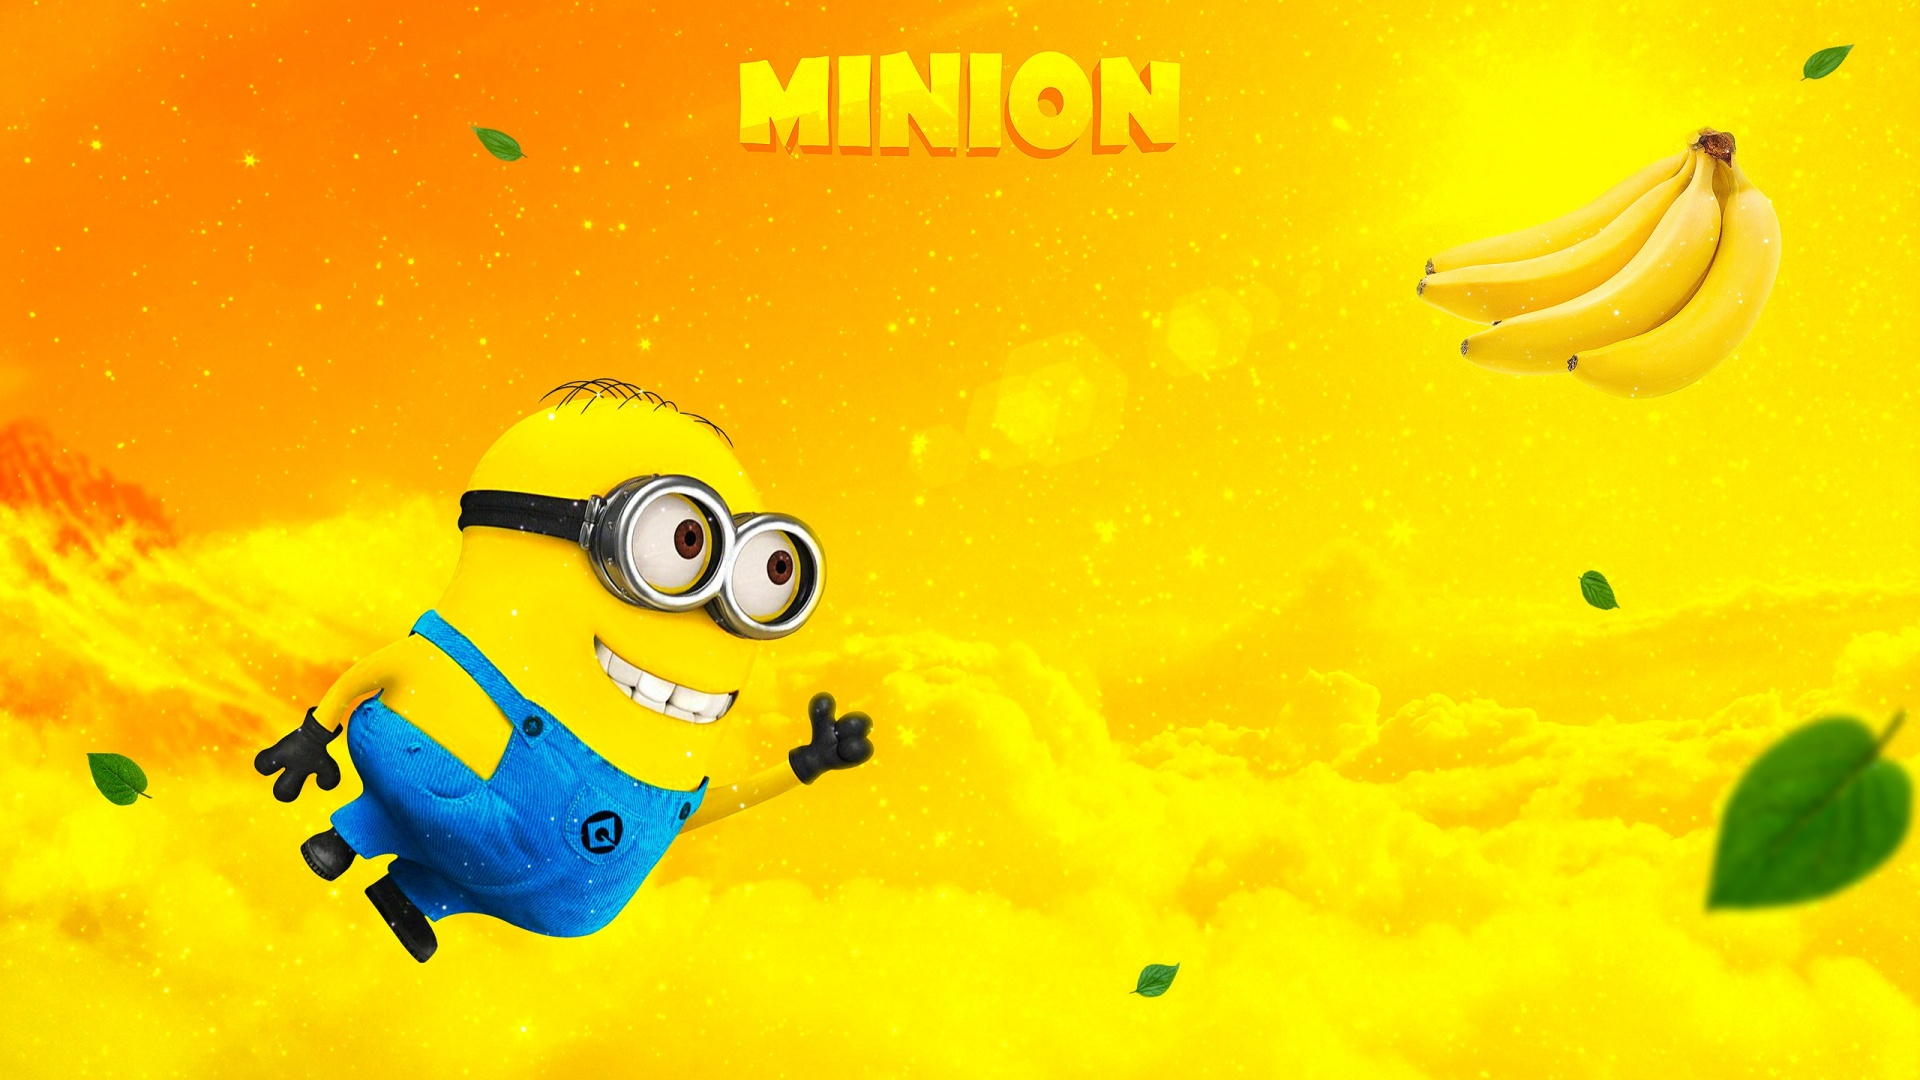 48+] Minion Wallpaper 1920 X 1080 on WallpaperSafari